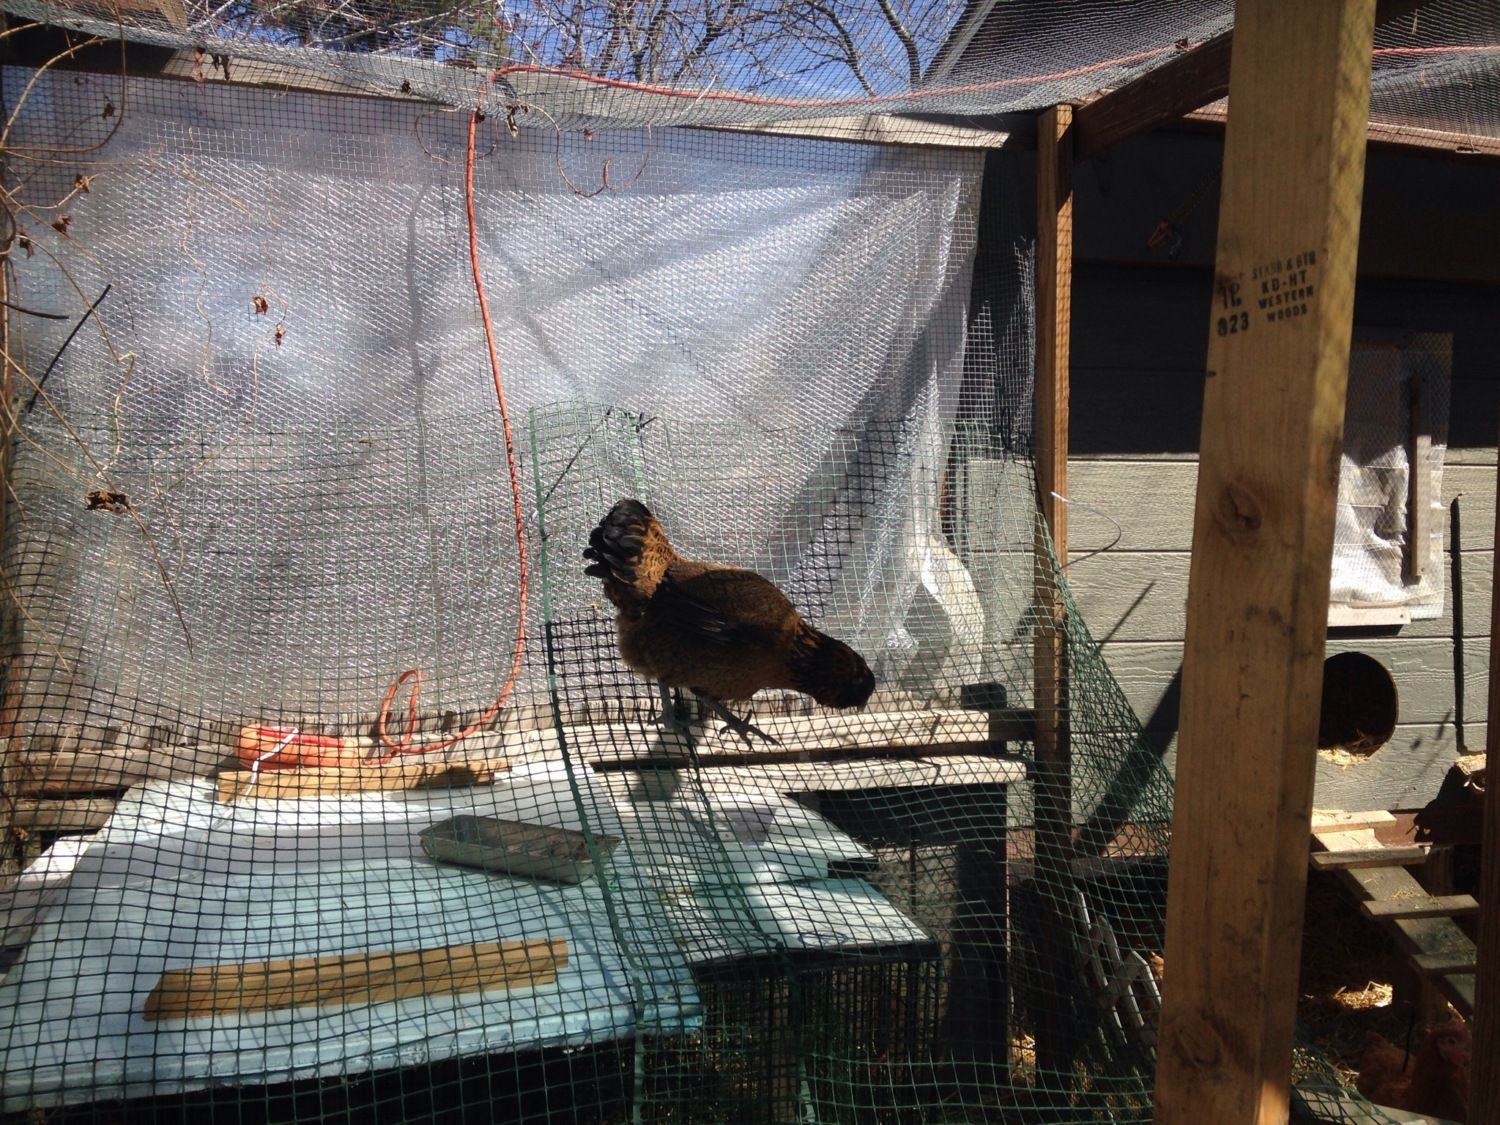 One of our hens trying to get in the brooder area...